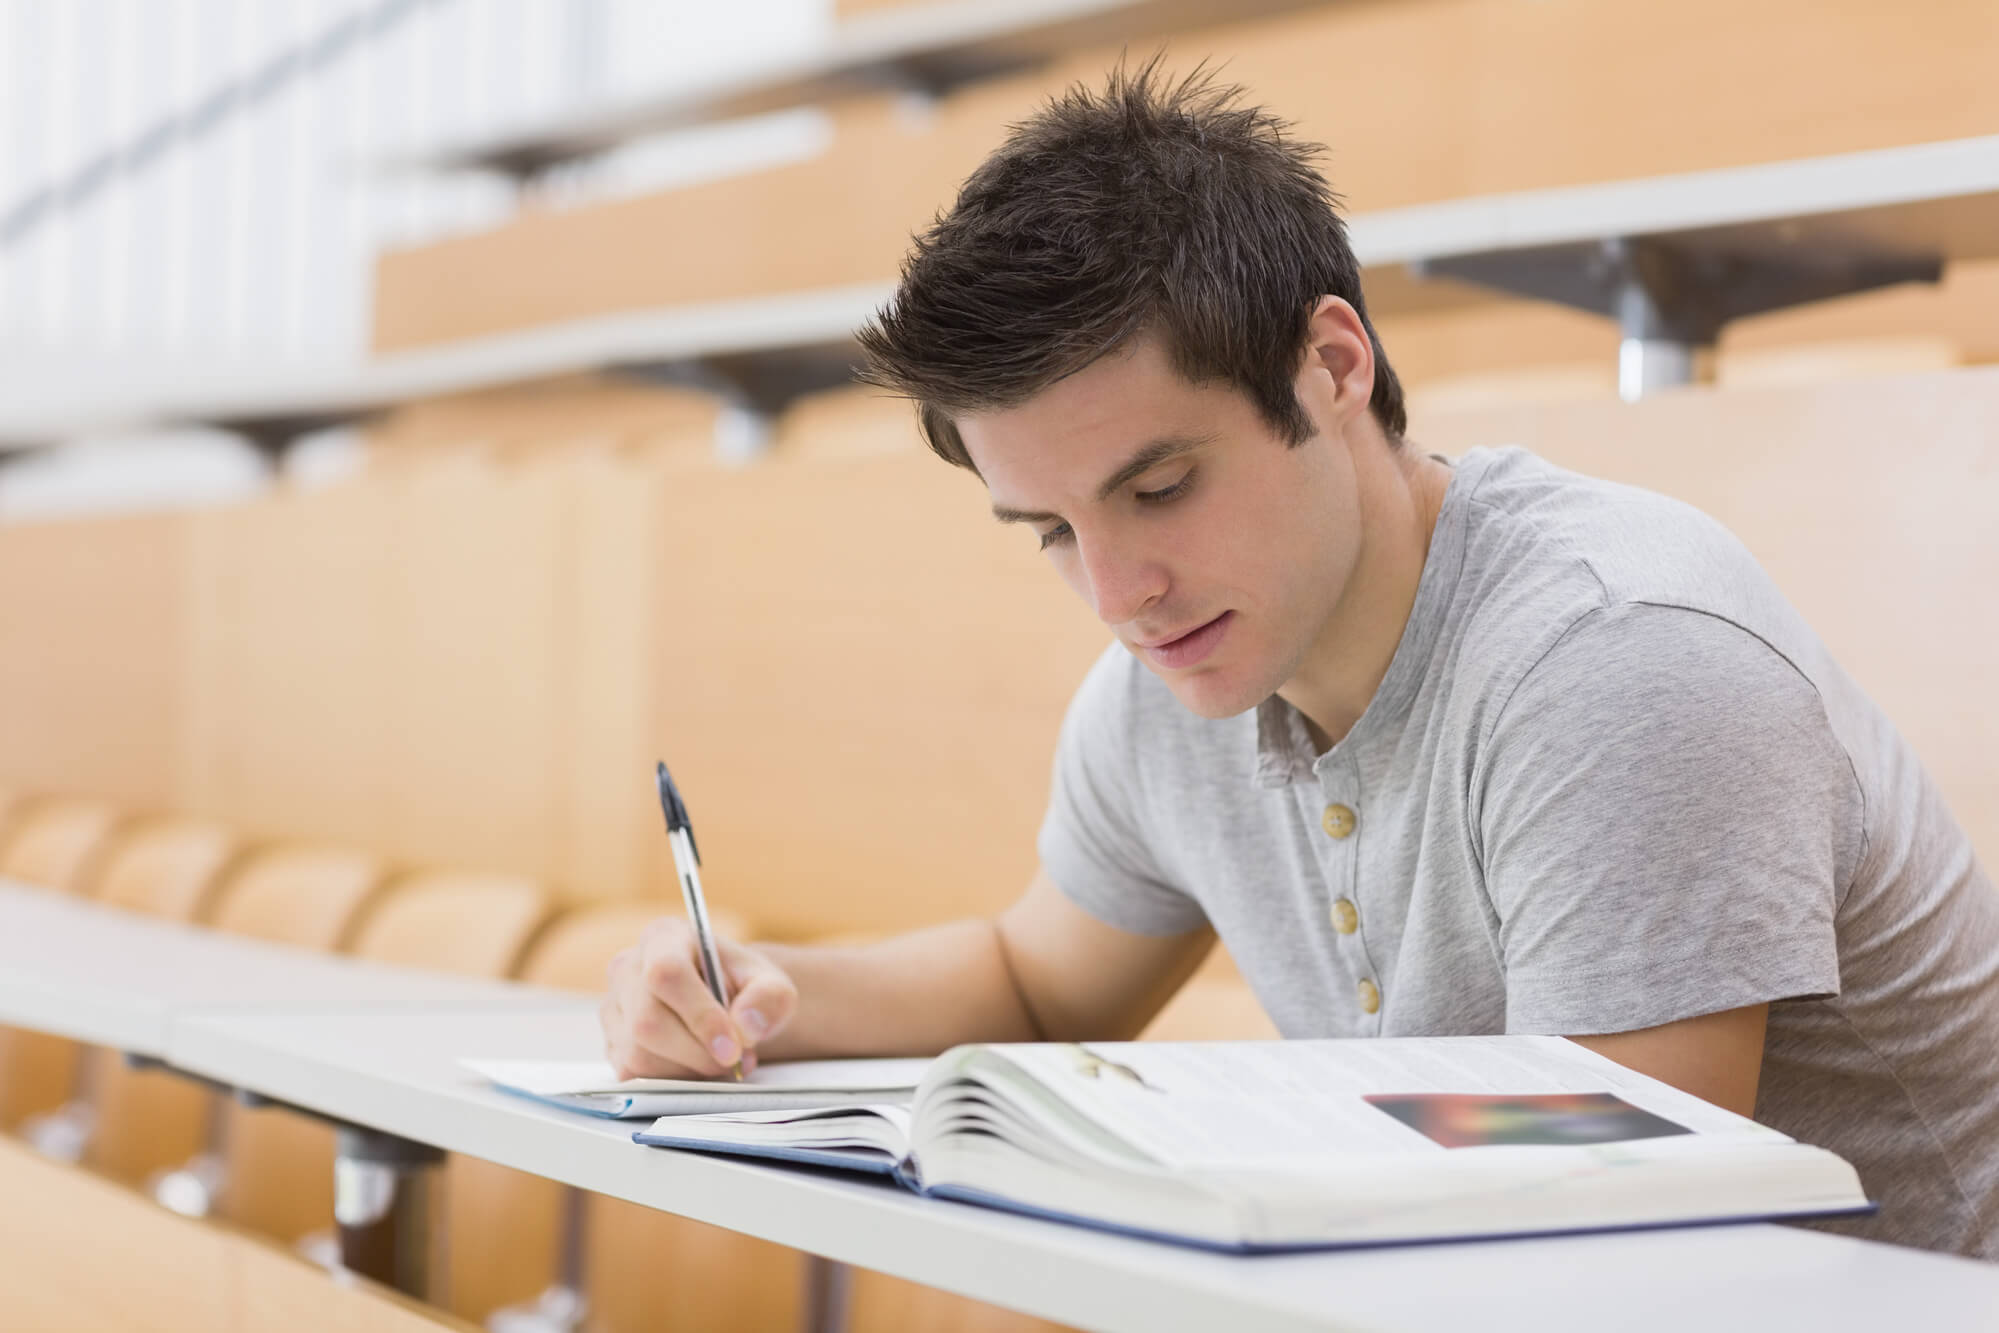 How to Avoid Ineffective Study Methods